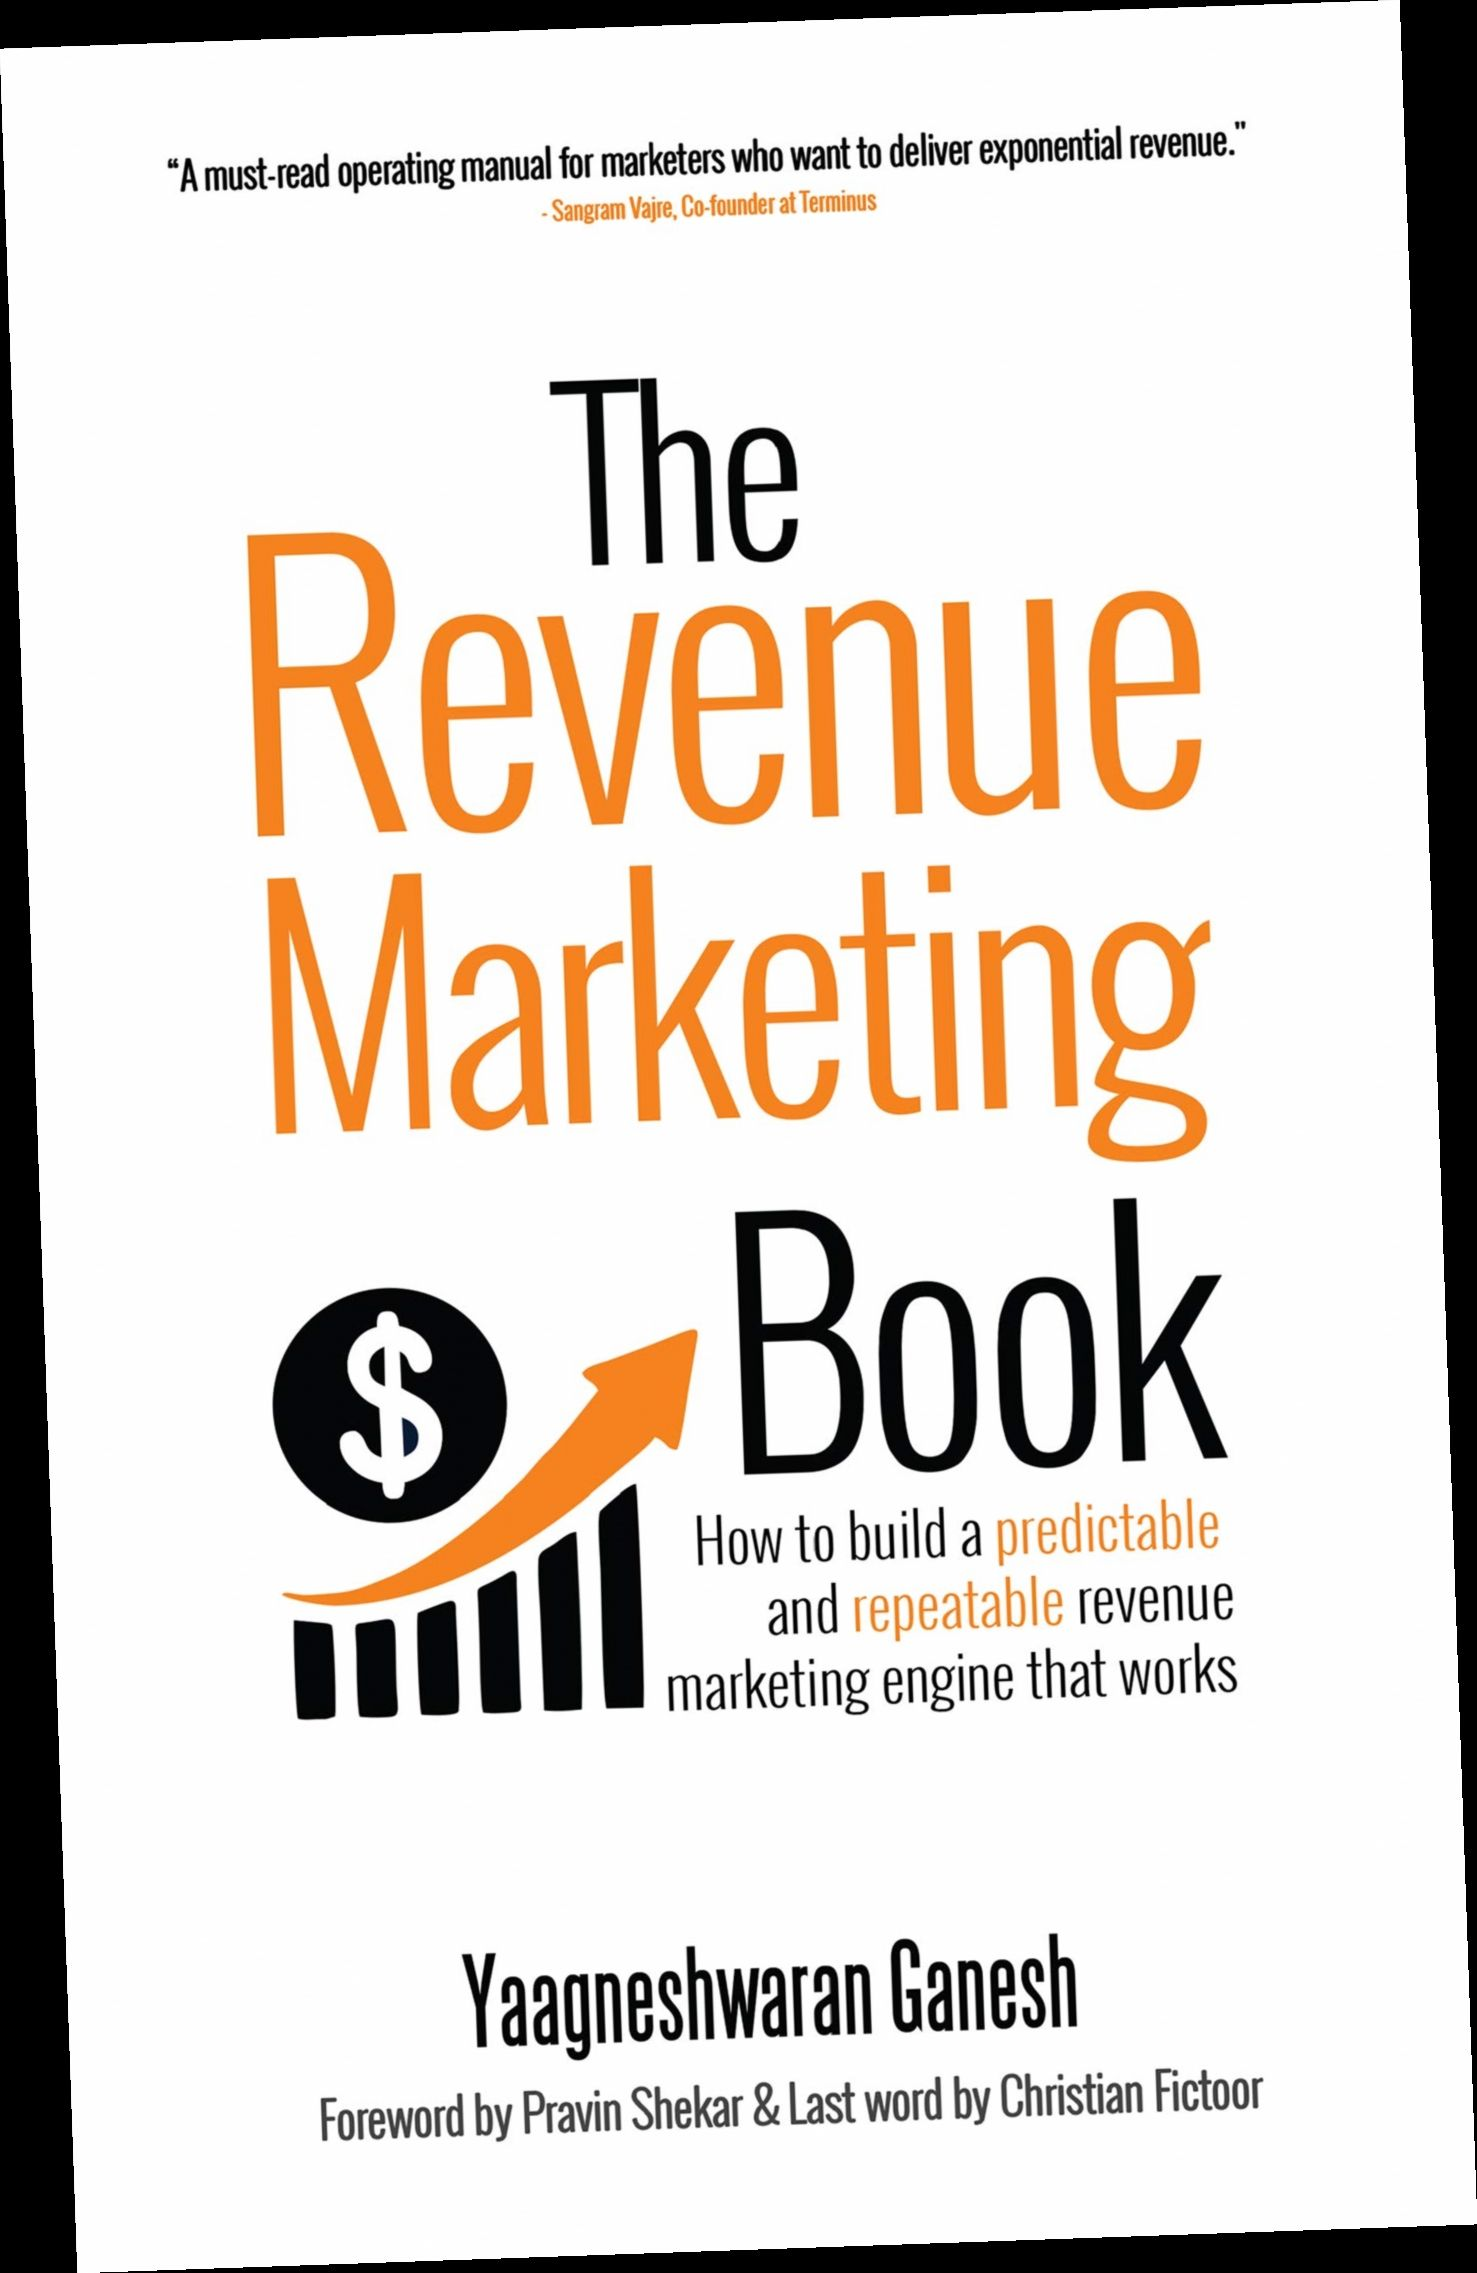 Ebook Pdf Epub Download The Revenue Marketing Book How To Build A Predictable And Repeatable Rev In 2020 Book Marketing Books Ebook